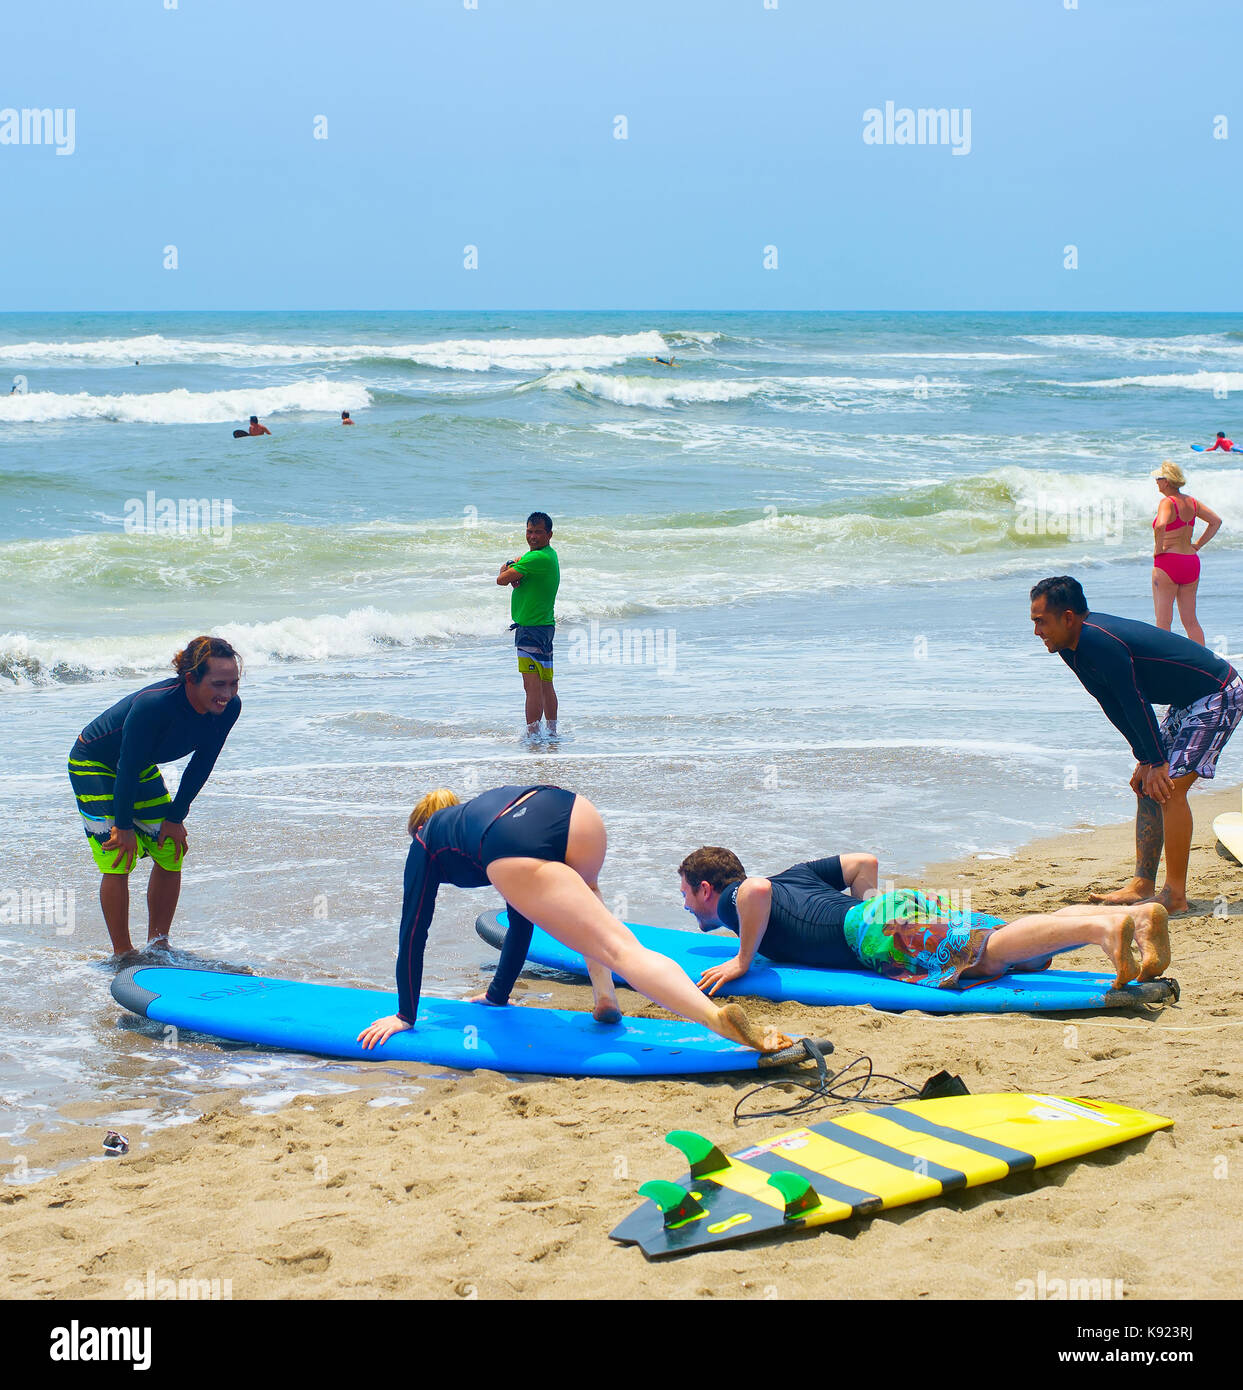 BALI ISLAND, INDONESIA - FEBRUARY 07, 2017: People learning surfing on the Balinese beach. Bali is the world famous - Stock Image